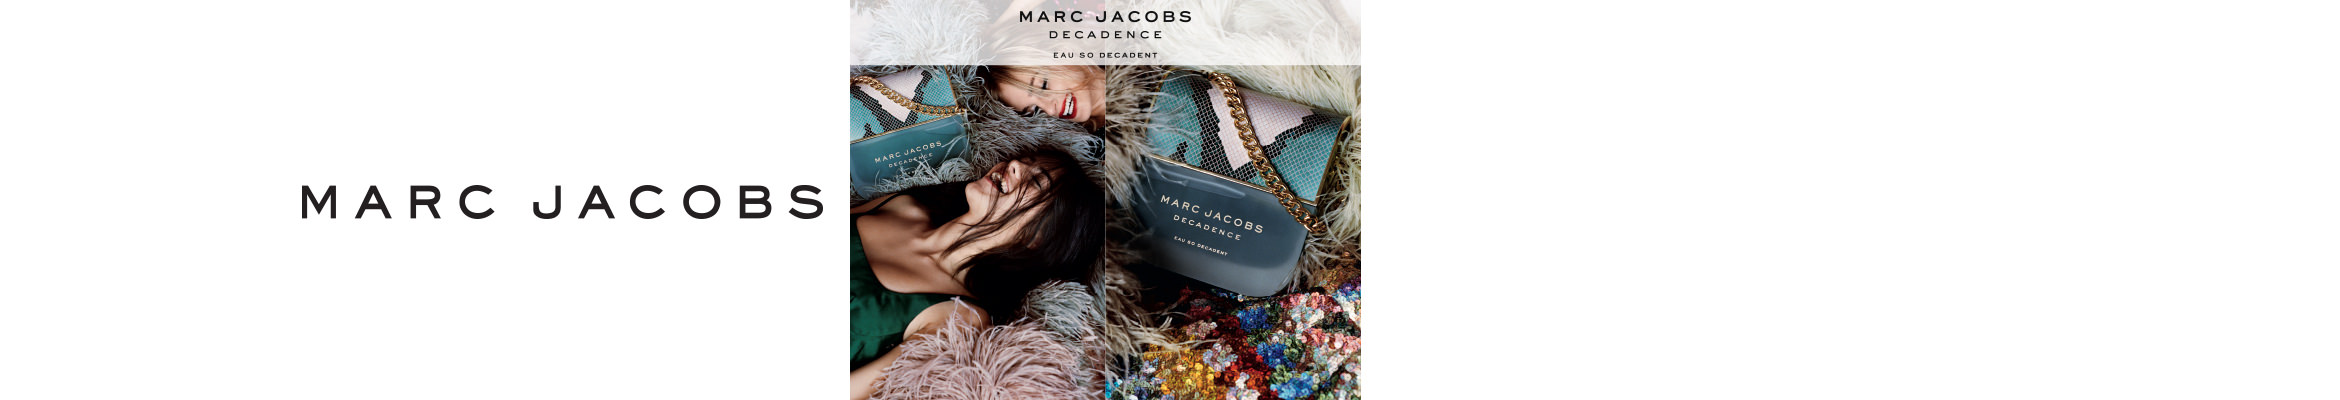 Marc_Jacobs_banner_AW17